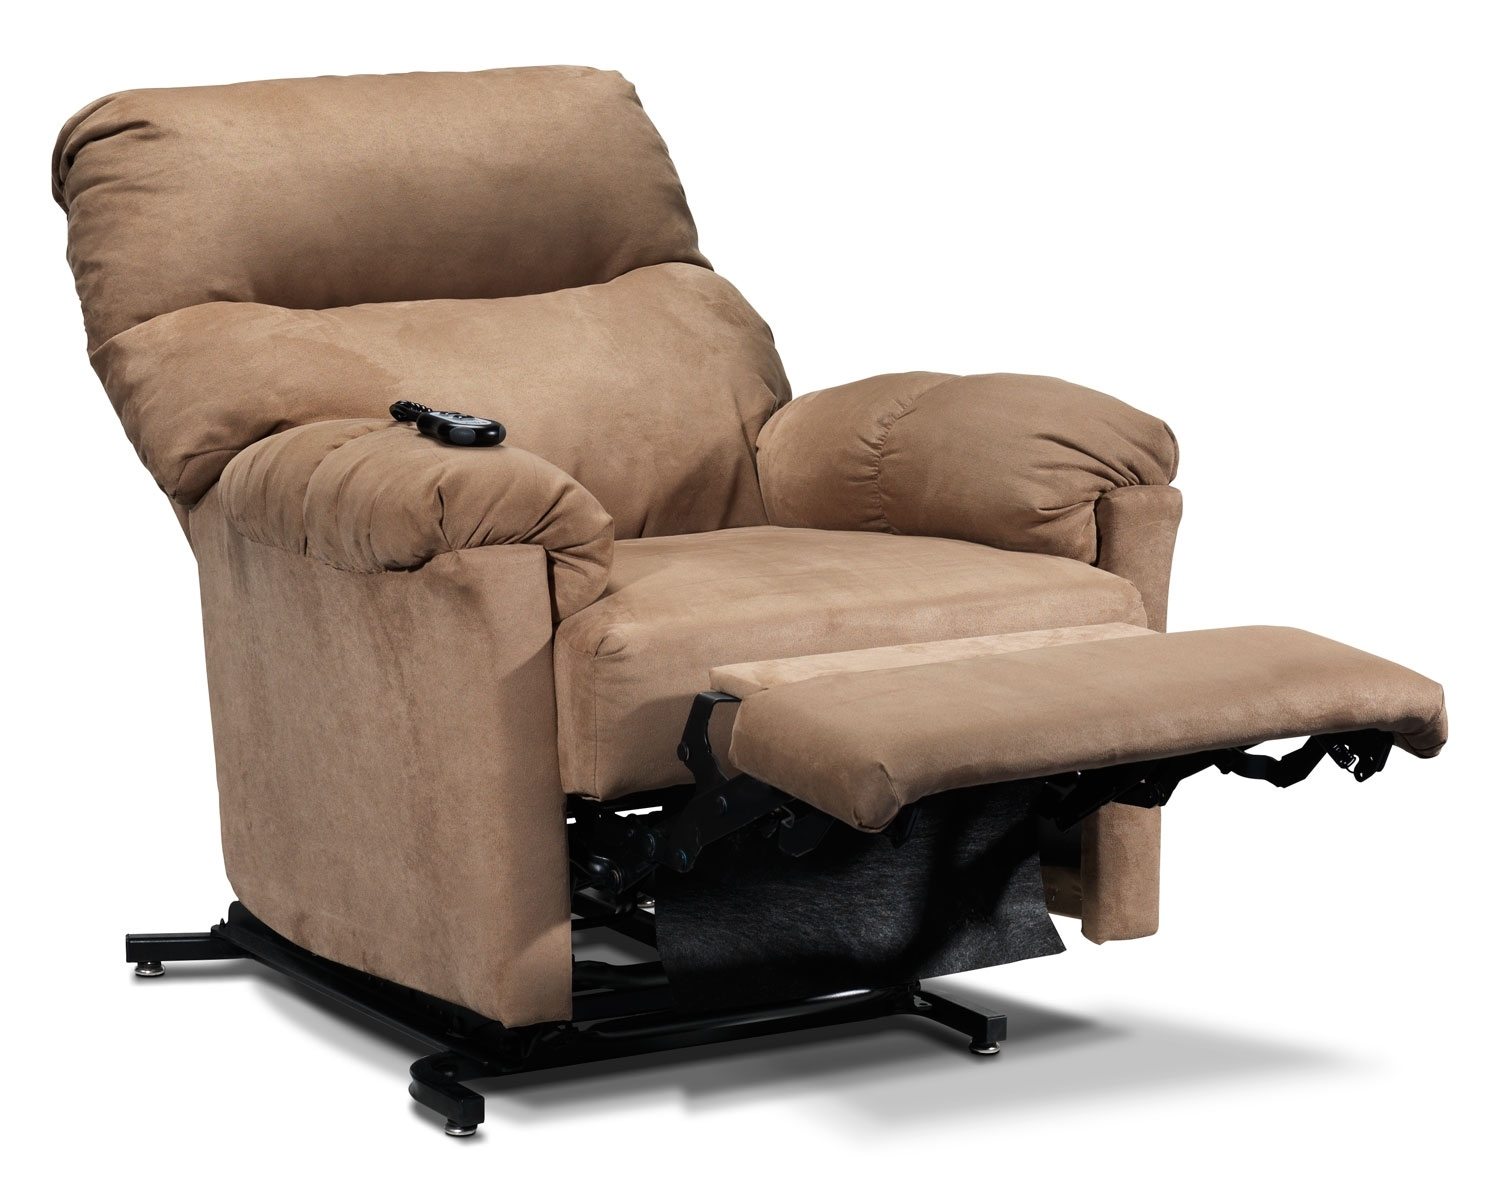 chairs pride indoor parts monarch medicare covered recliner lift dual wide furniture lay by reviews burns loveseat table remote motor flat leather fabric massage large dsc extra of size full ritas best catnapper ultra comfort poweredsofas comforter chair oliver assist comfortable power seat